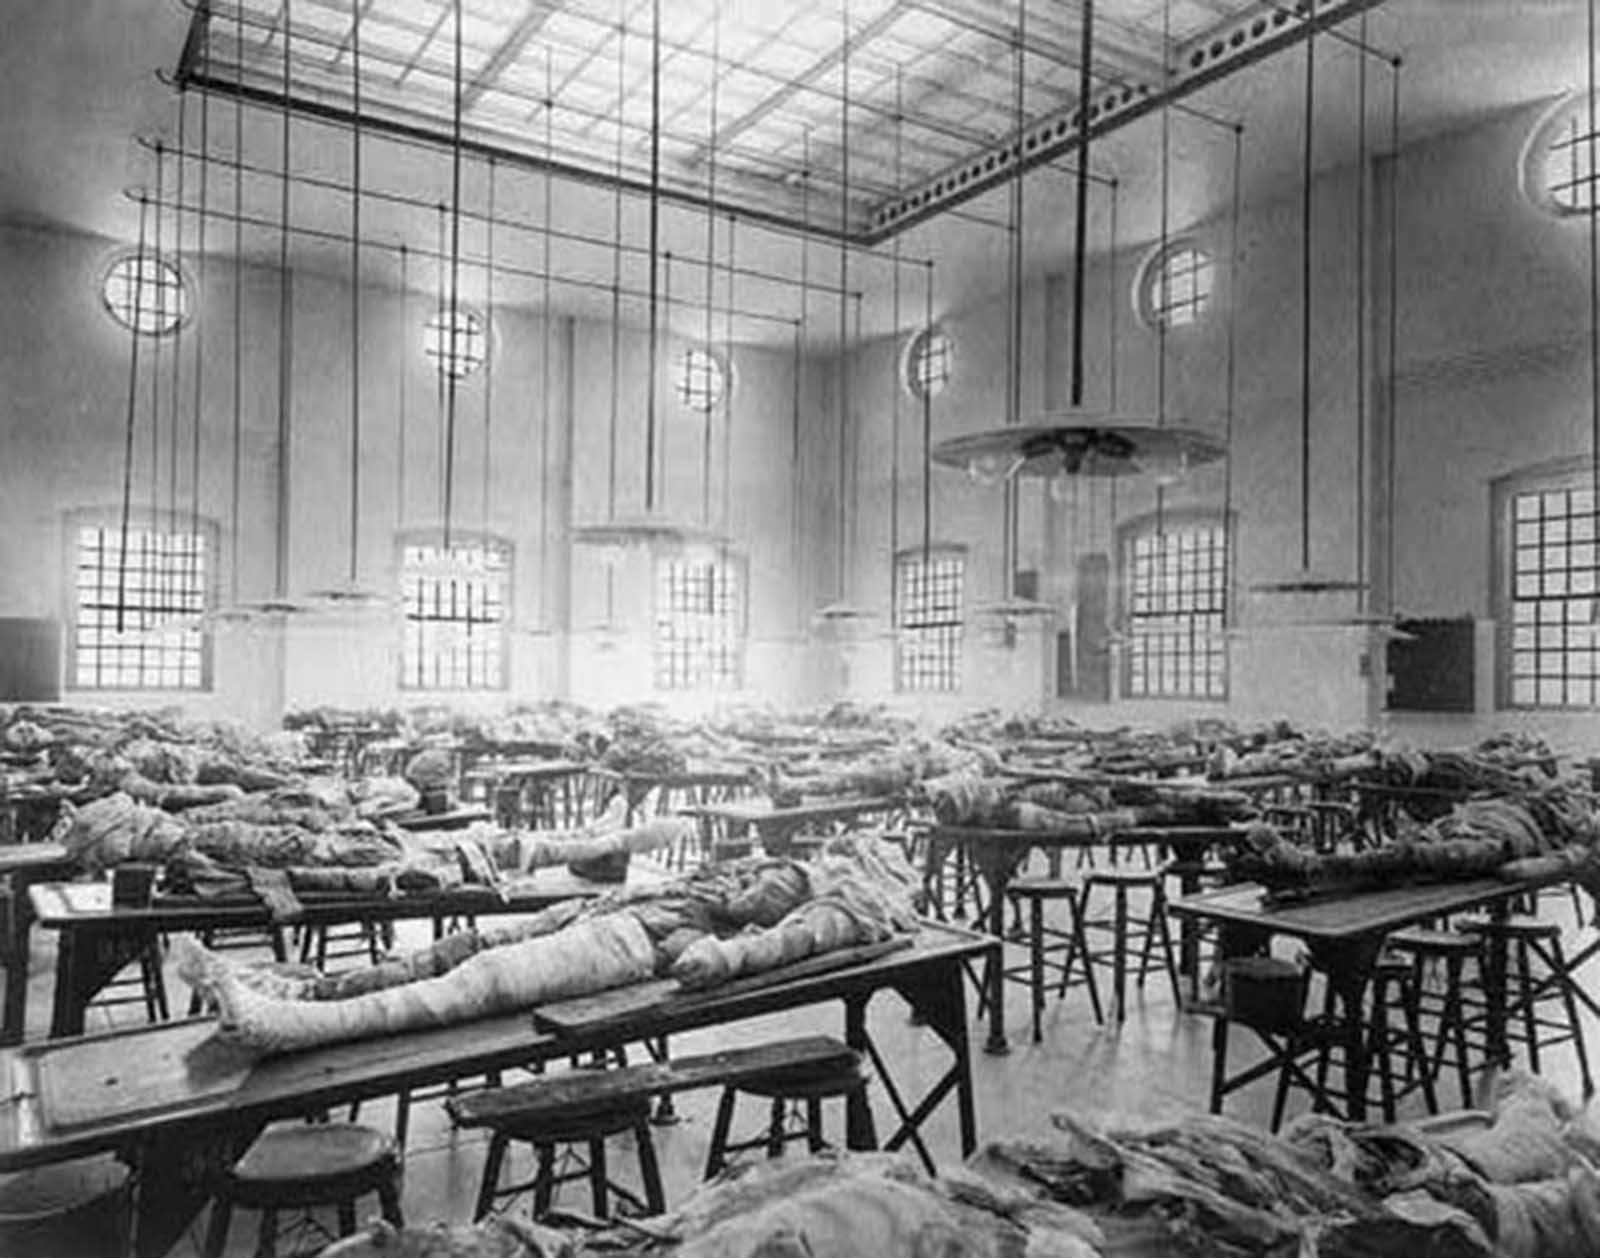 Partially dissected cadavers on tables in the dissecting room at the Jefferson Medical College in Philadelphia, PA, circa 1902.